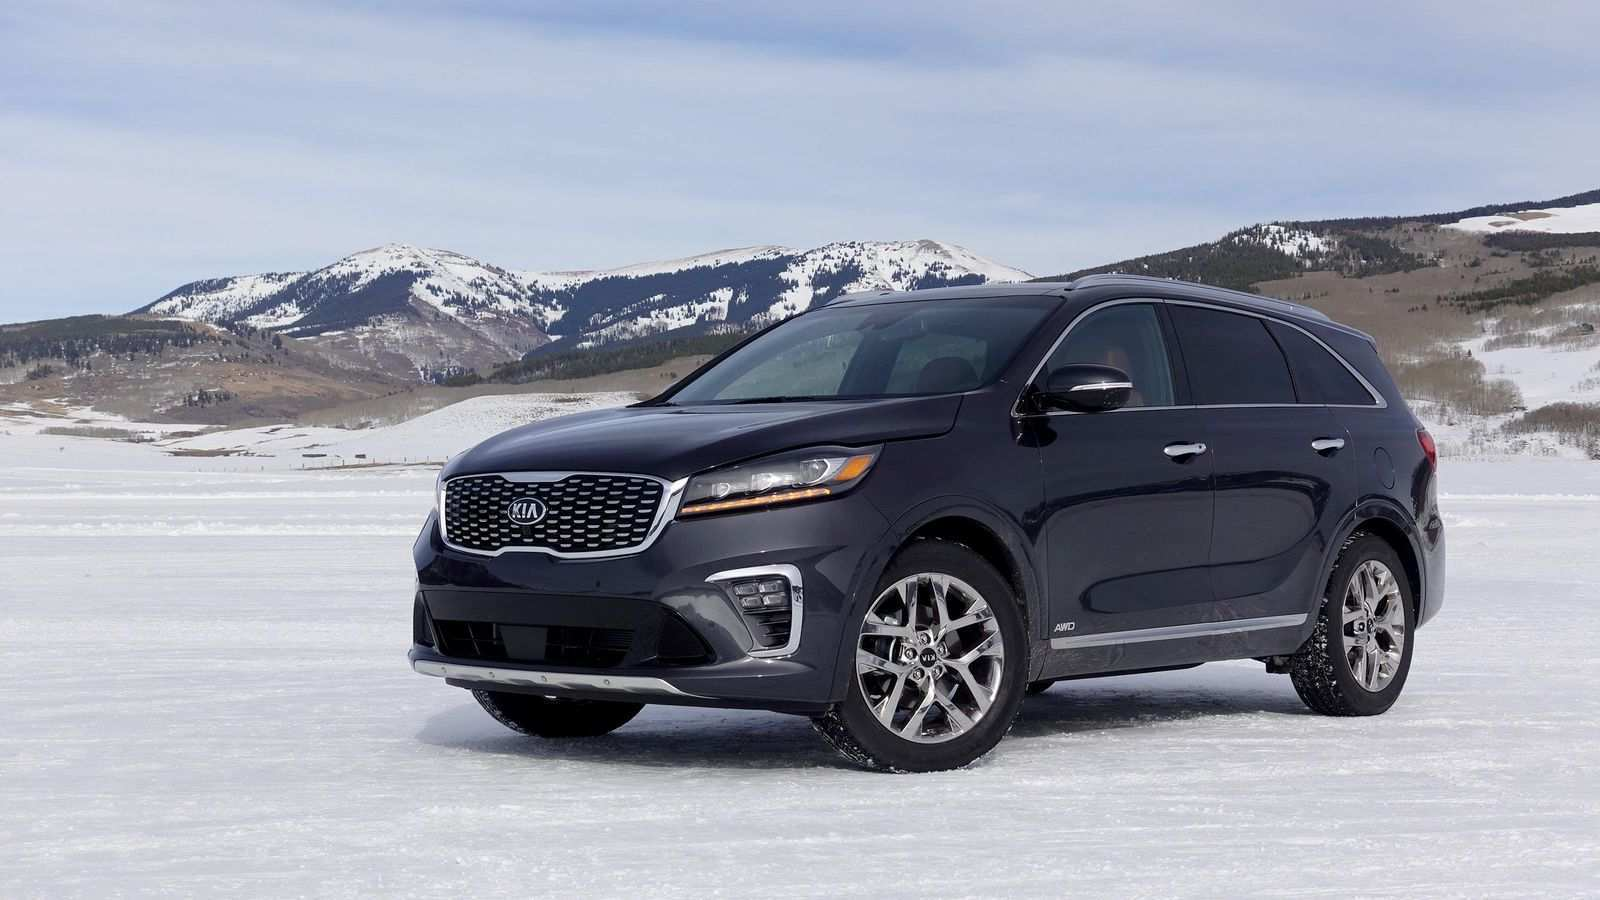 72 The 2019 Kia Sorento Release Date Redesign and Concept by 2019 Kia Sorento Release Date